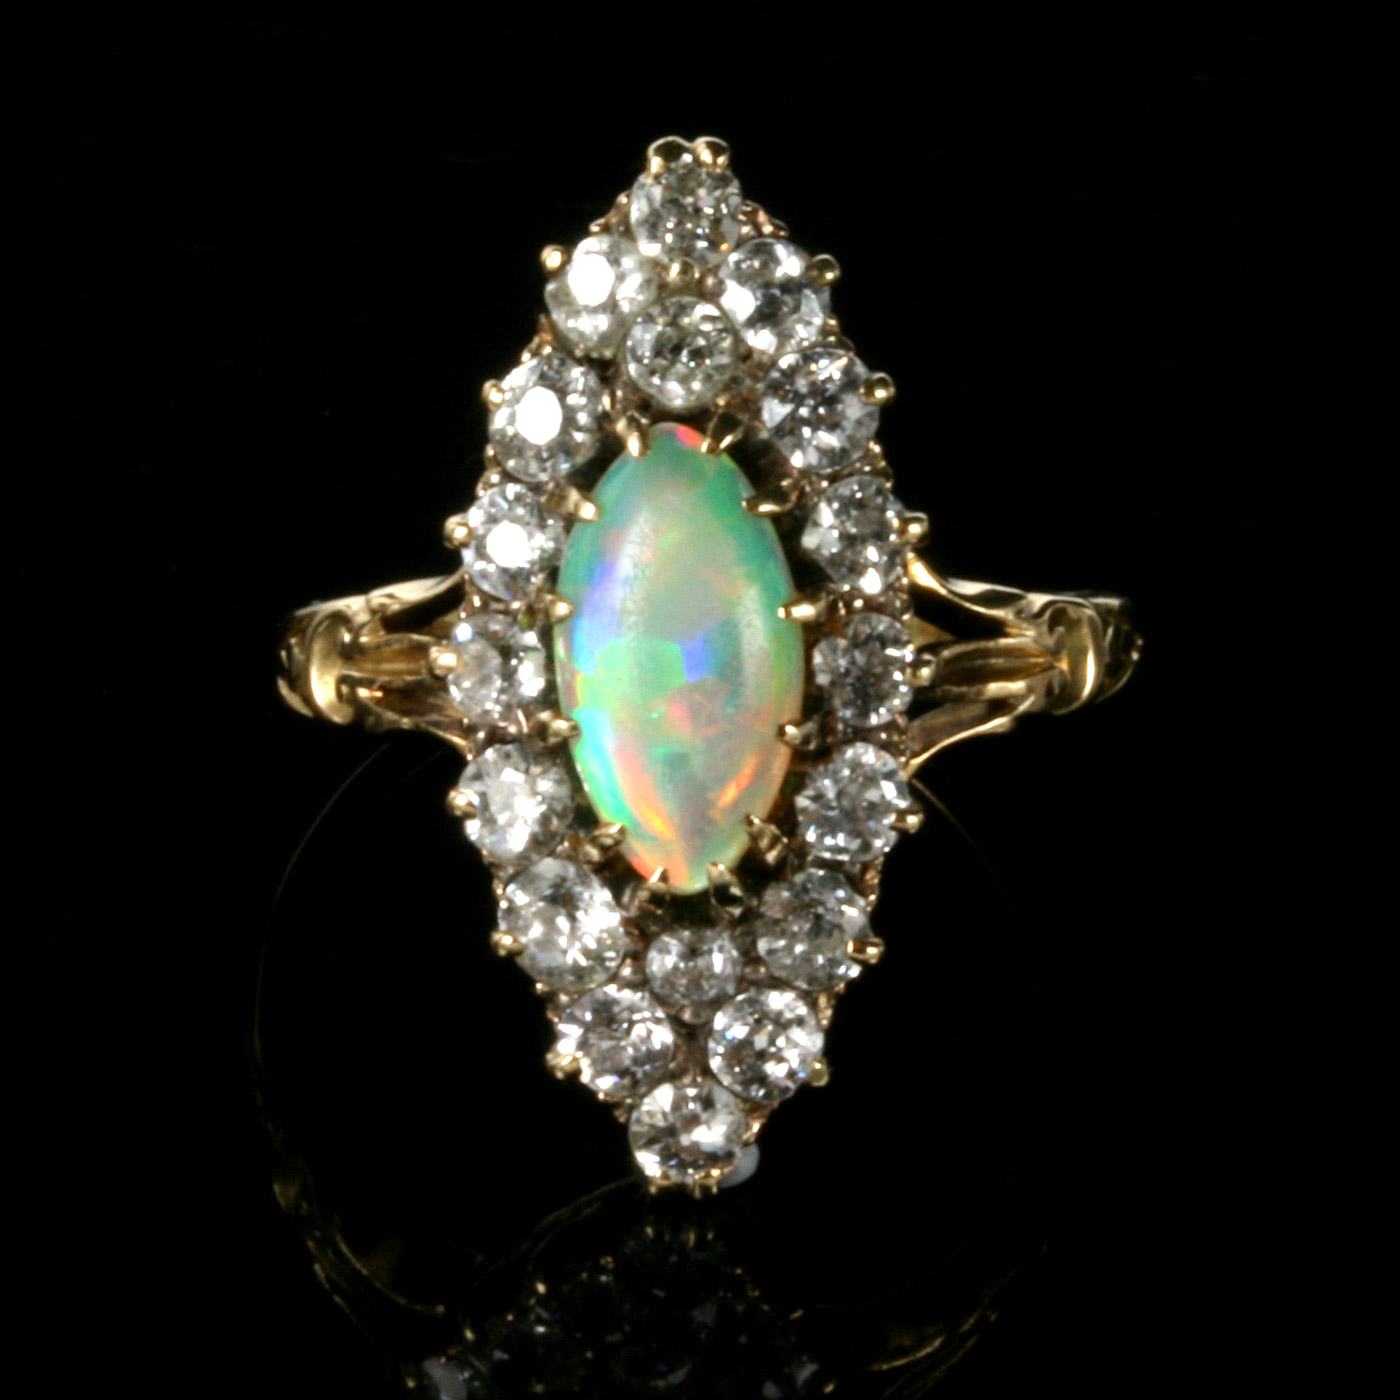 paraiba tourmaline product ring subsampling crop diamond scale shaped the upscale shop lozenge kissing boghossian false and